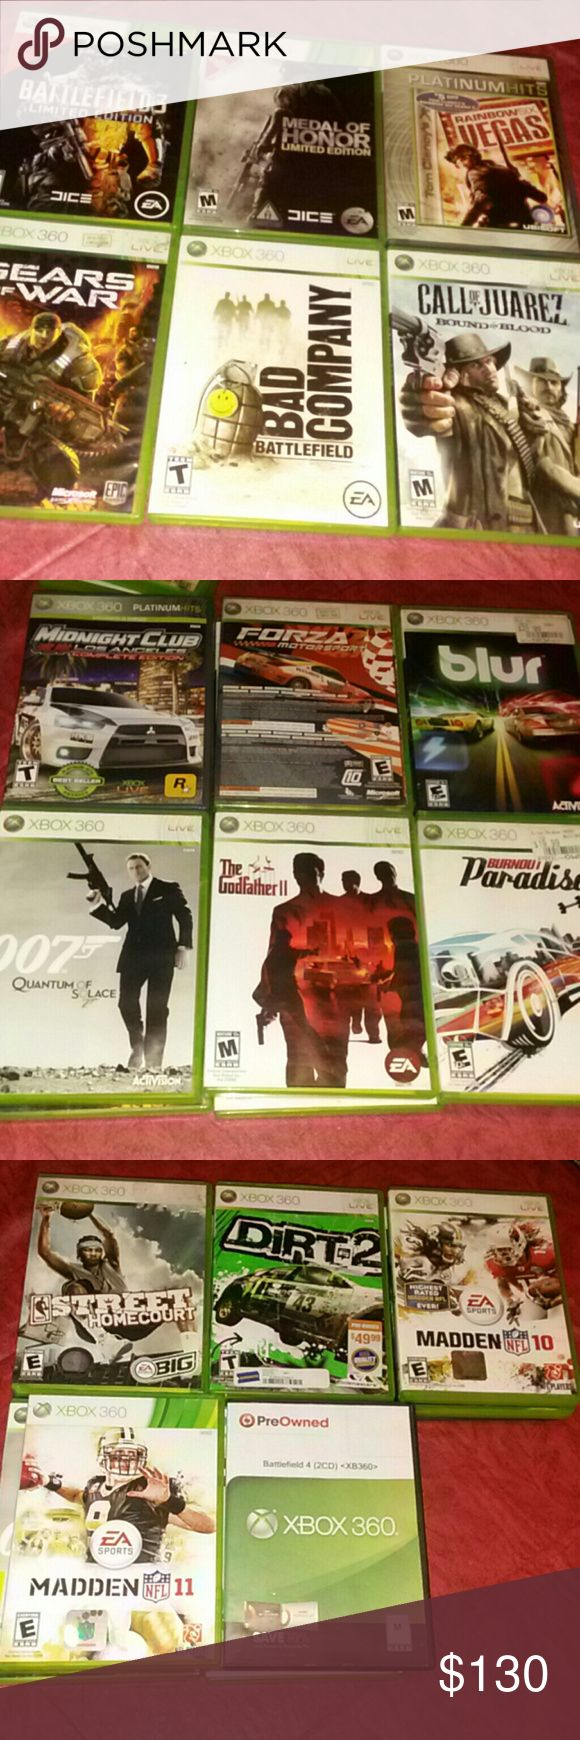 18 xbox games in working conditions 1- fallsou new Vegas ultimate edition never been open still has plastic 2-battlefield3 limited edition 3- Medal of honor limited edition 4-rainbows x Vegas 5-gears of war 6- bad company battlefield 7-call of Juarez bound  in blood 8-midnight club los Angeles complete edition 9- forza2 Motorsport 10-blur 11- 007 quantum of solace 12-the godfather 11 13- burnout Paradise 14-street homecourt 15- dirt2 16-madden NFL 10 17-madden NFL 11 18-battlefield 4 Xbox…